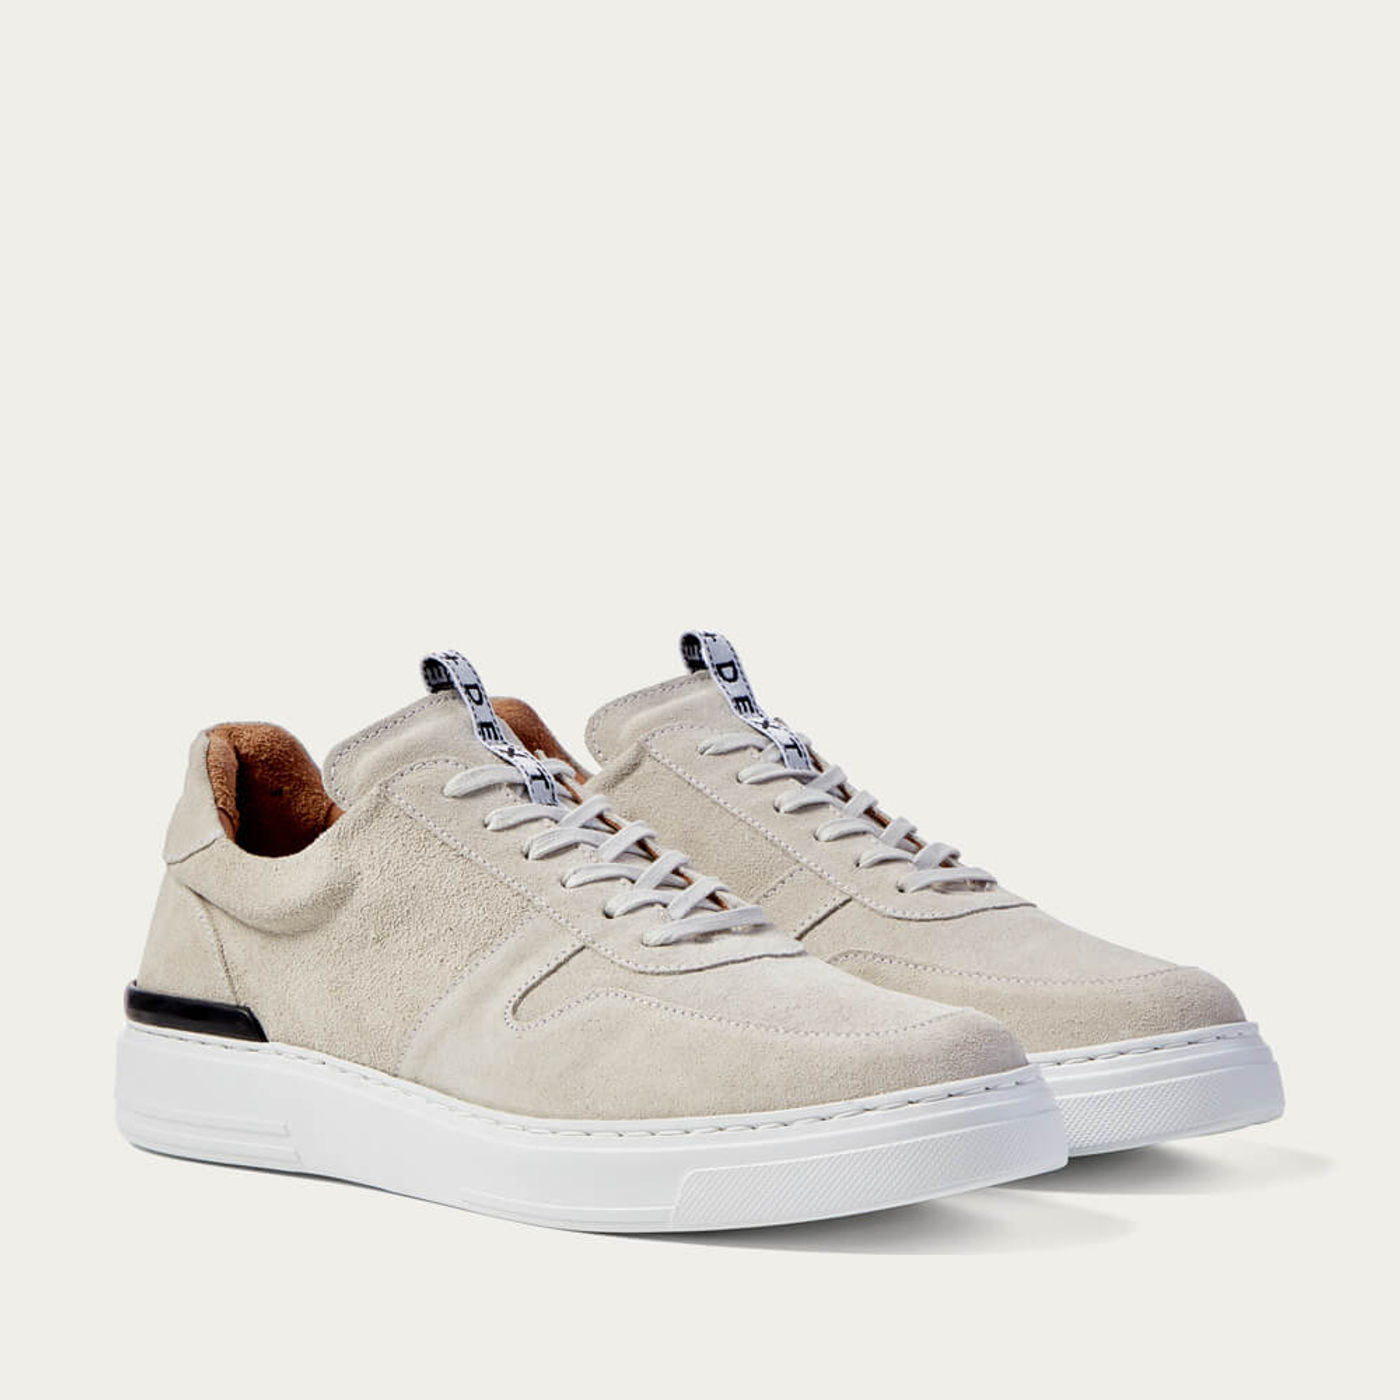 Off-White Ritchie Leather Sneaker   Bombinate